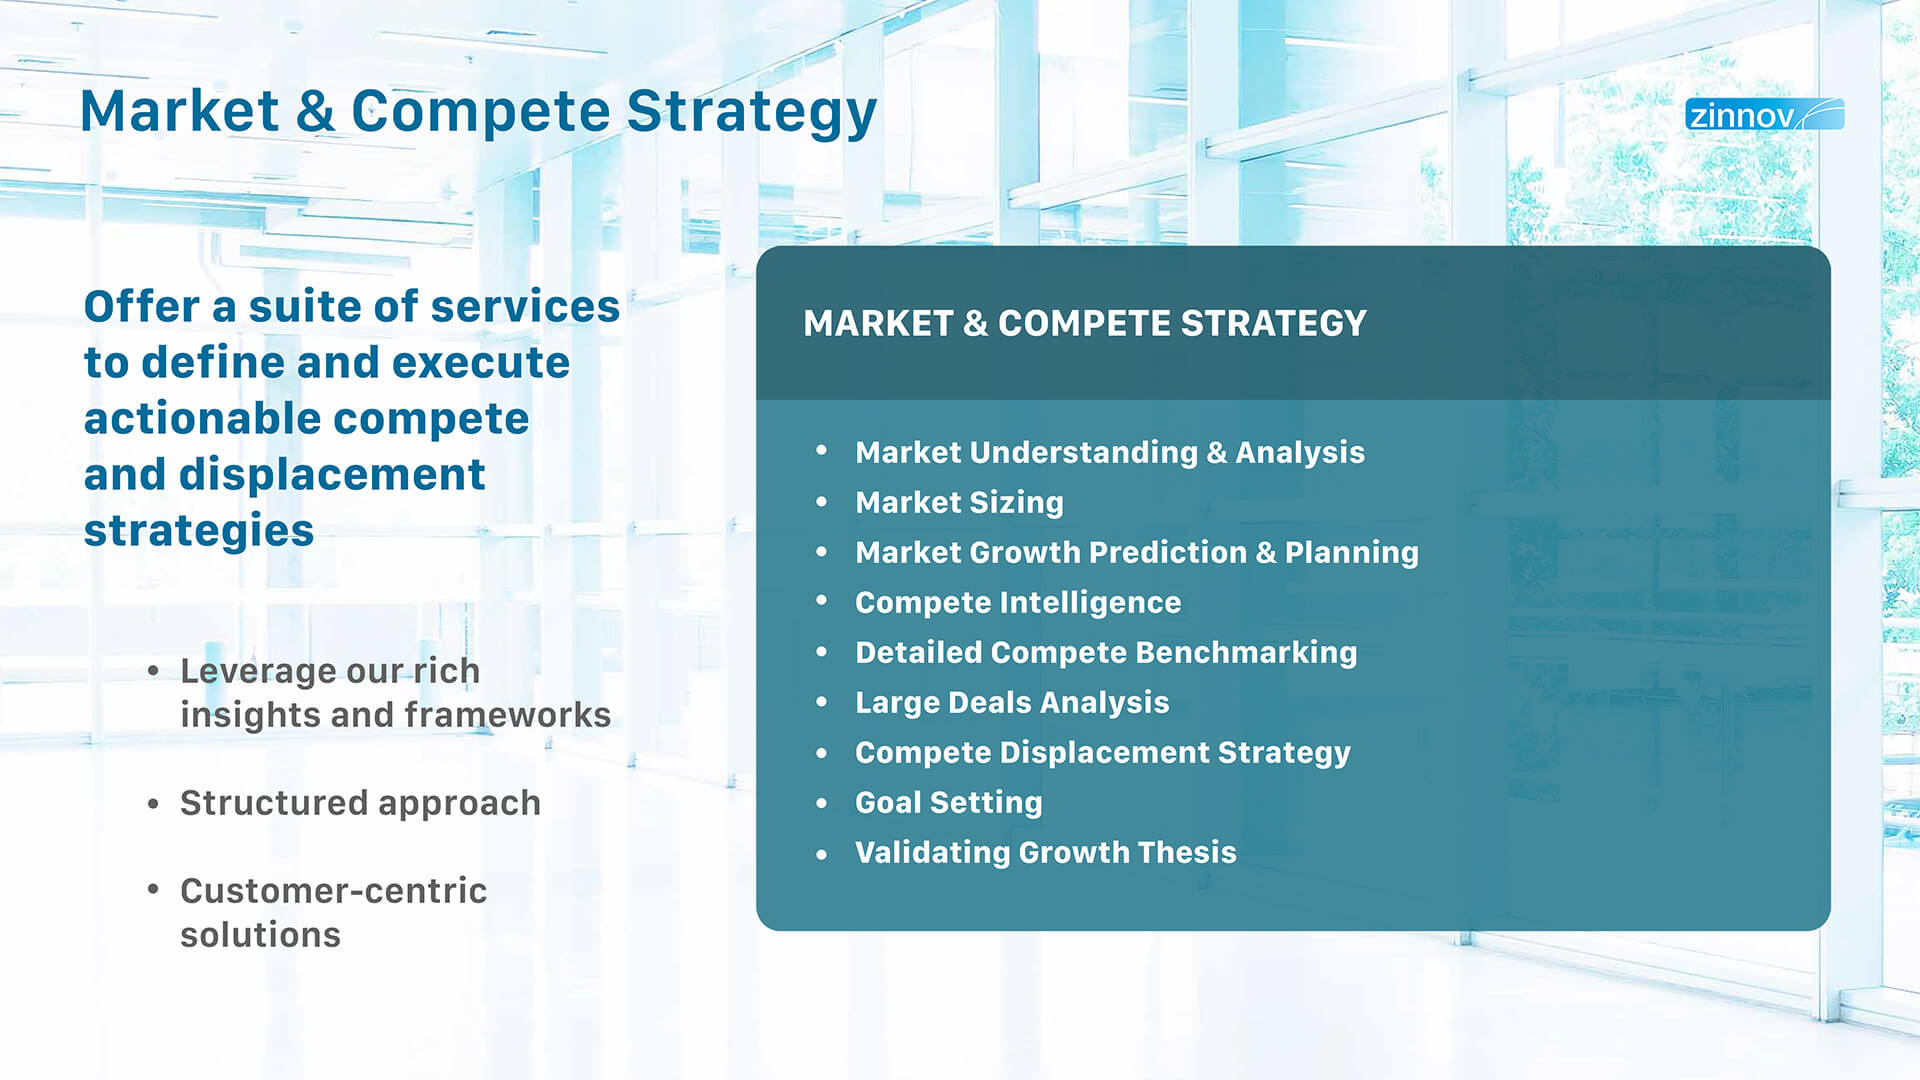 Market & Compete Strategy